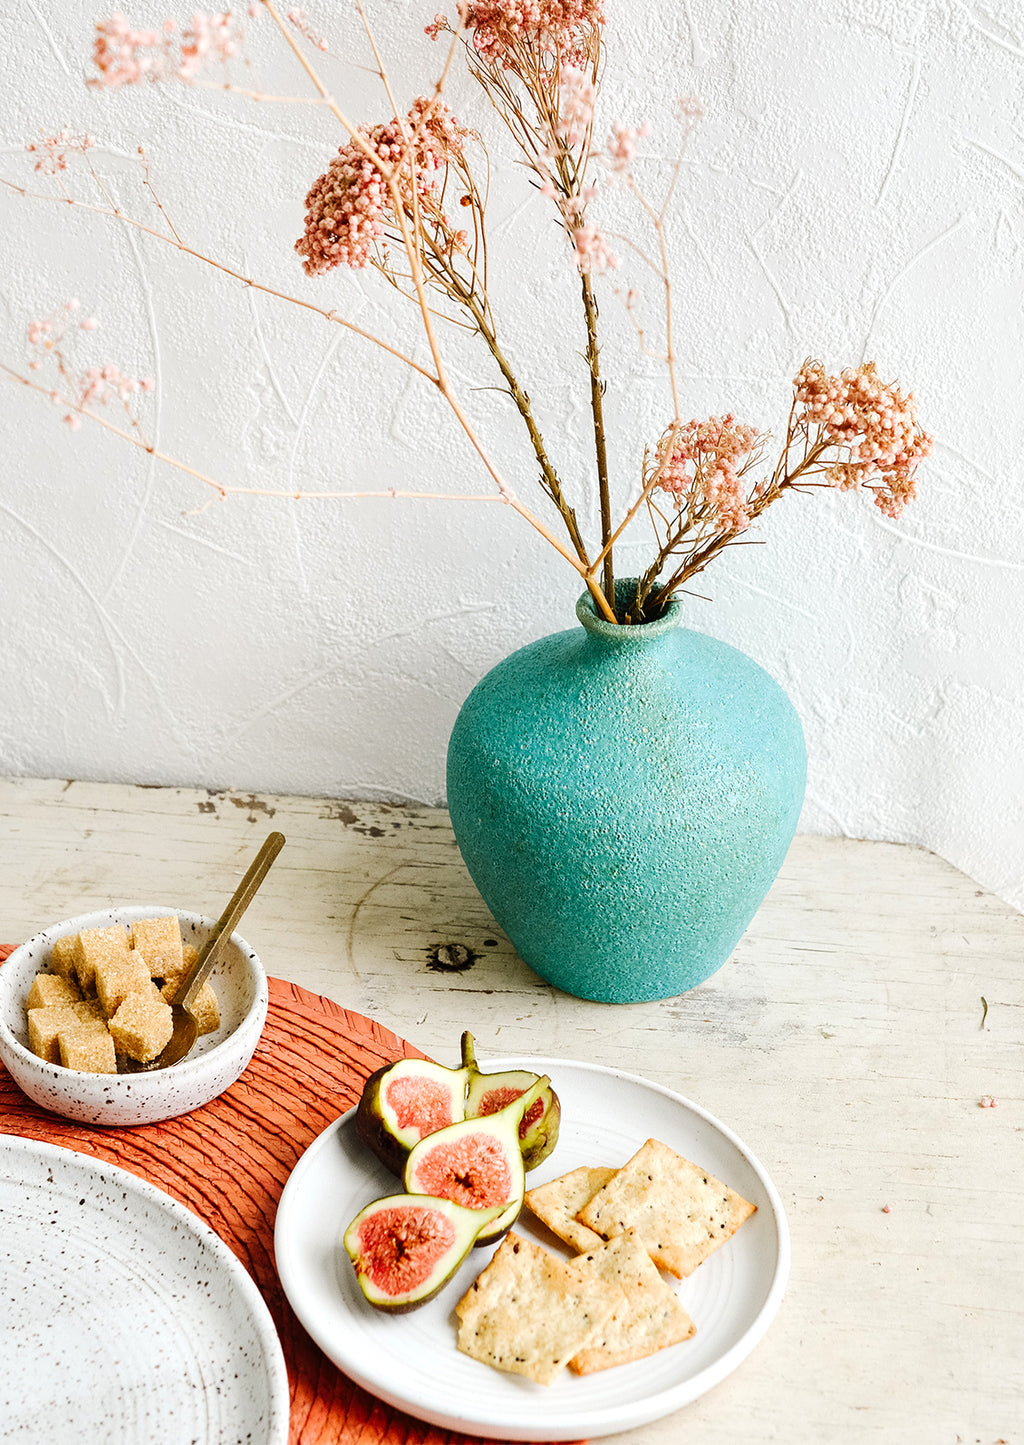 3: A turquoise ceramic vase amidst a breakfast tabletop scene.